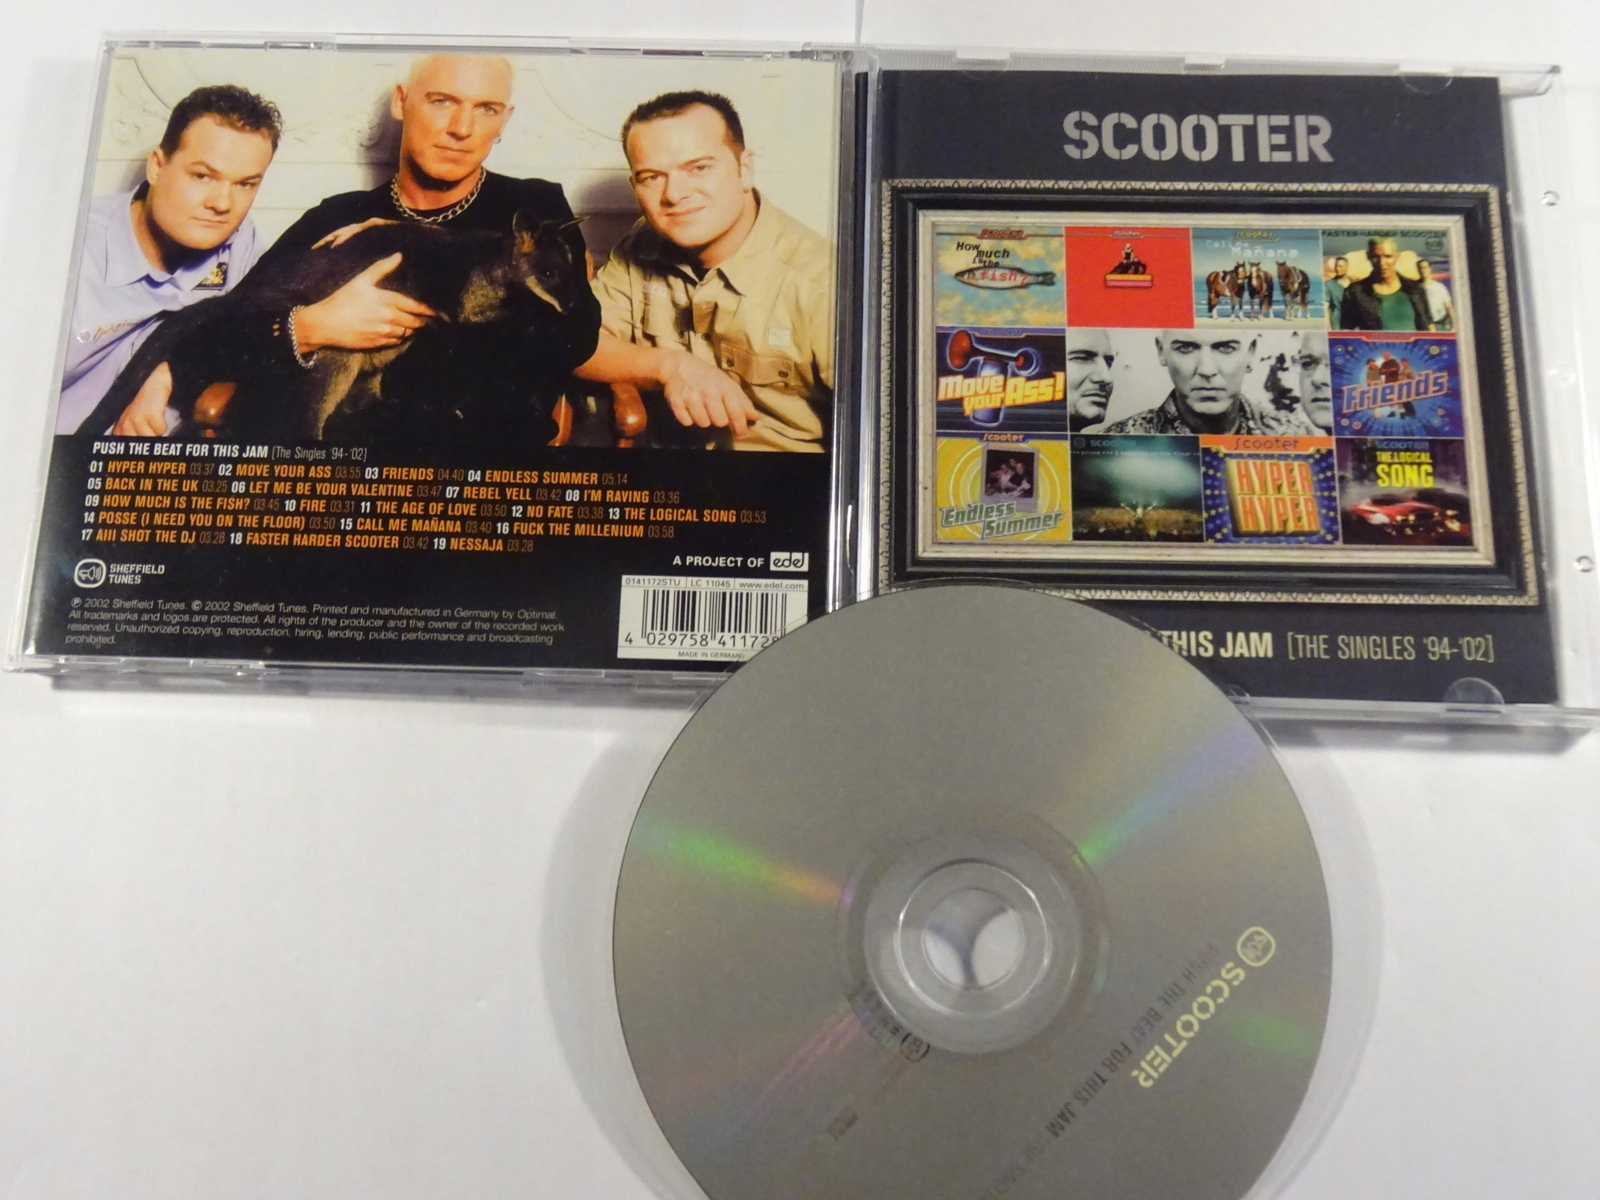 SCOOTER PUSH THE BEAT FOR THIS JAM SINGLES 94 - 02